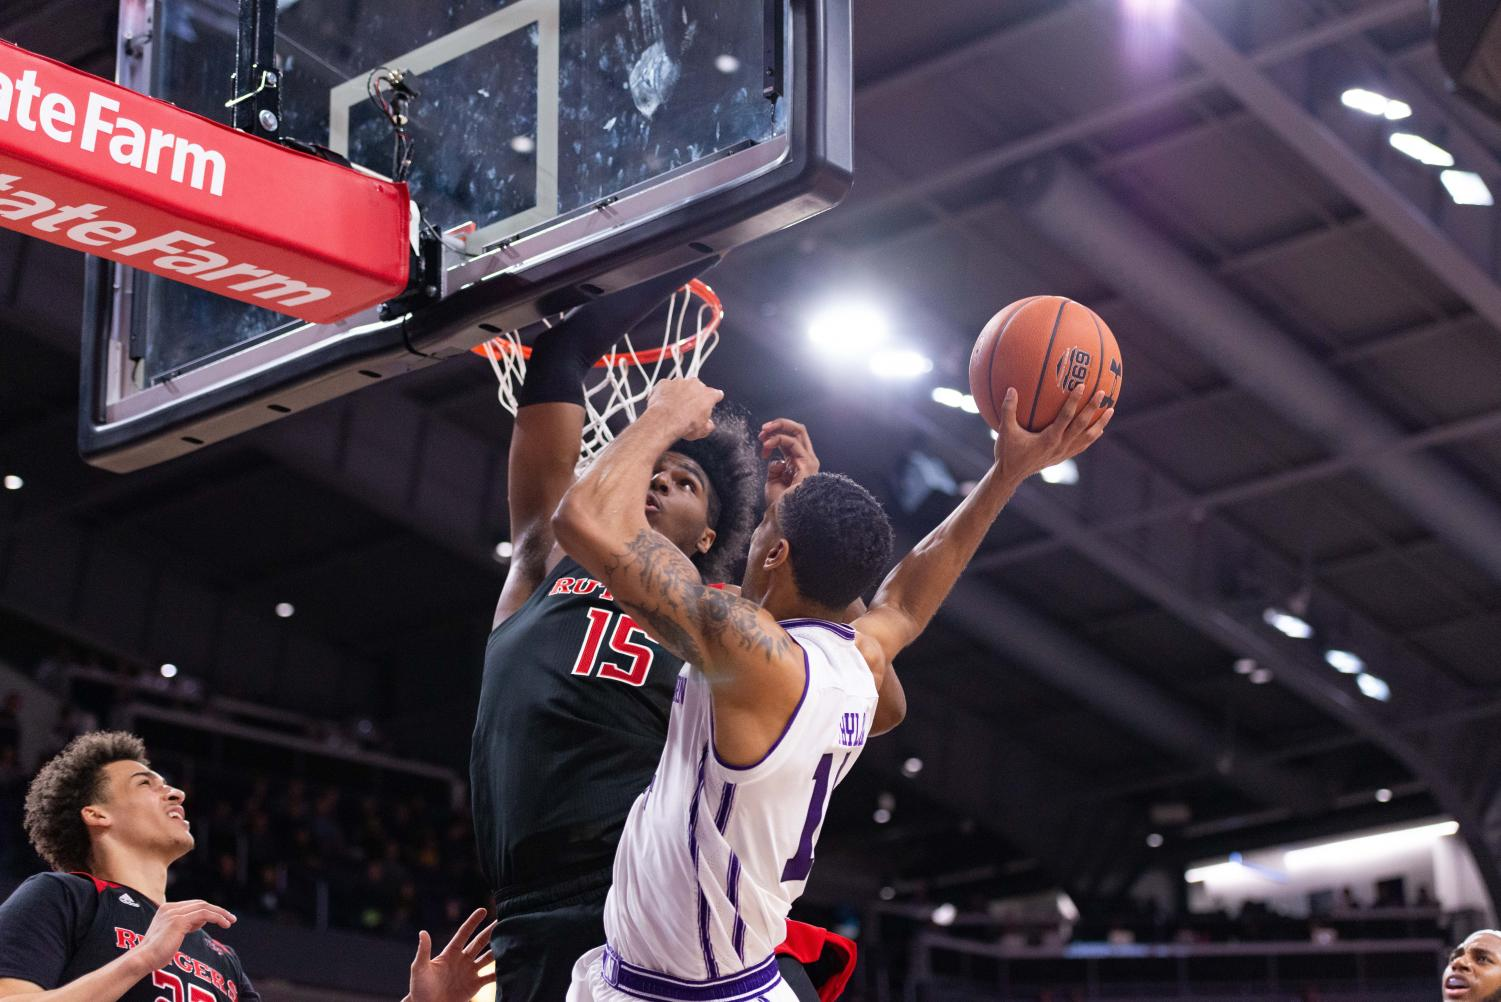 Ryan Taylor puts up a layup. Northwestern missed a lot of shots Wednesday.